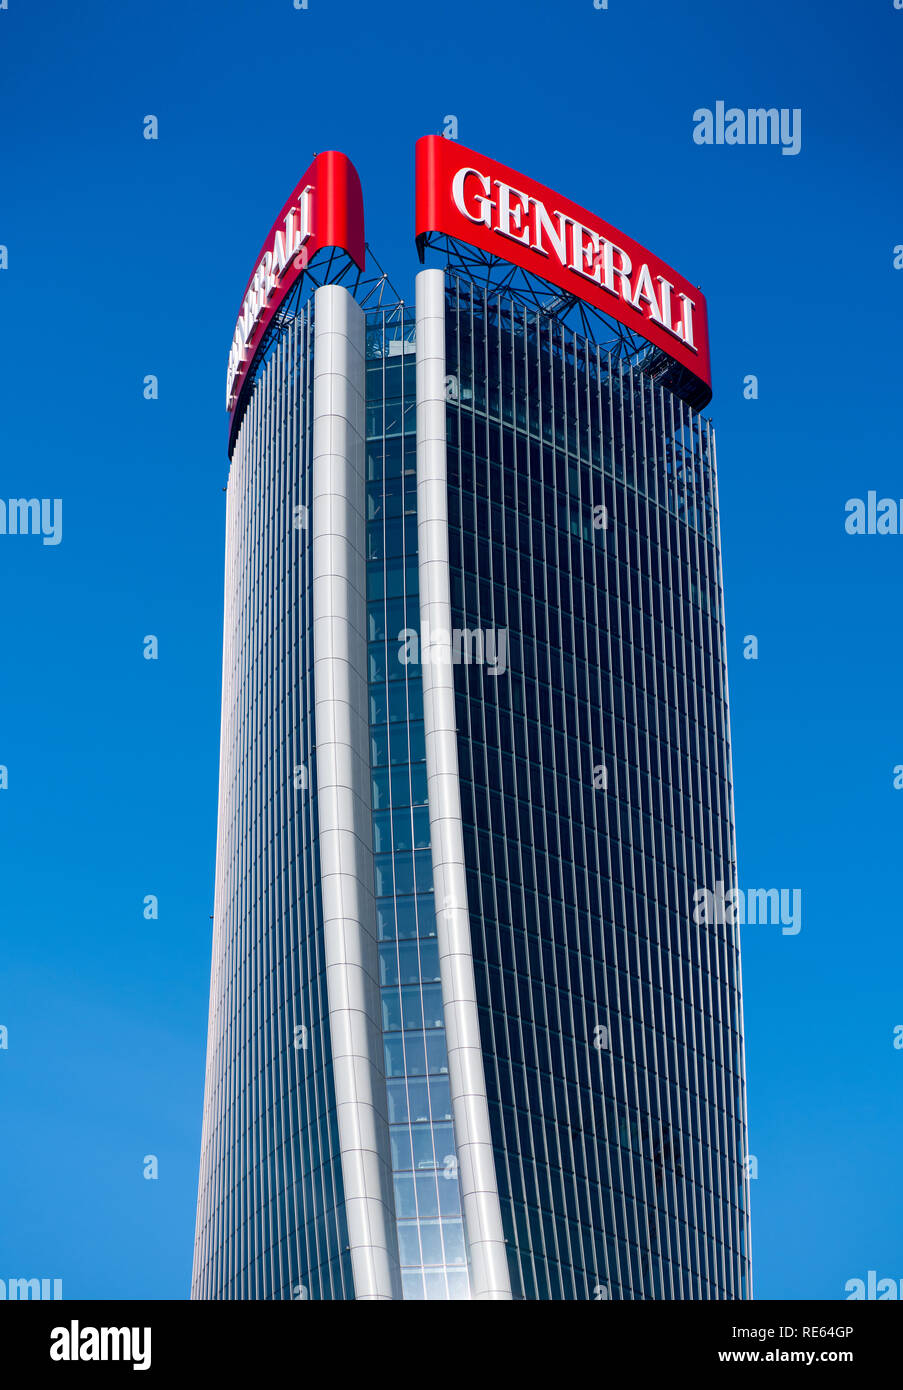 External facade of the Generali Tower in Milan Italy with its modern warped design by Zaha Hadid against a blue sky - Stock Image